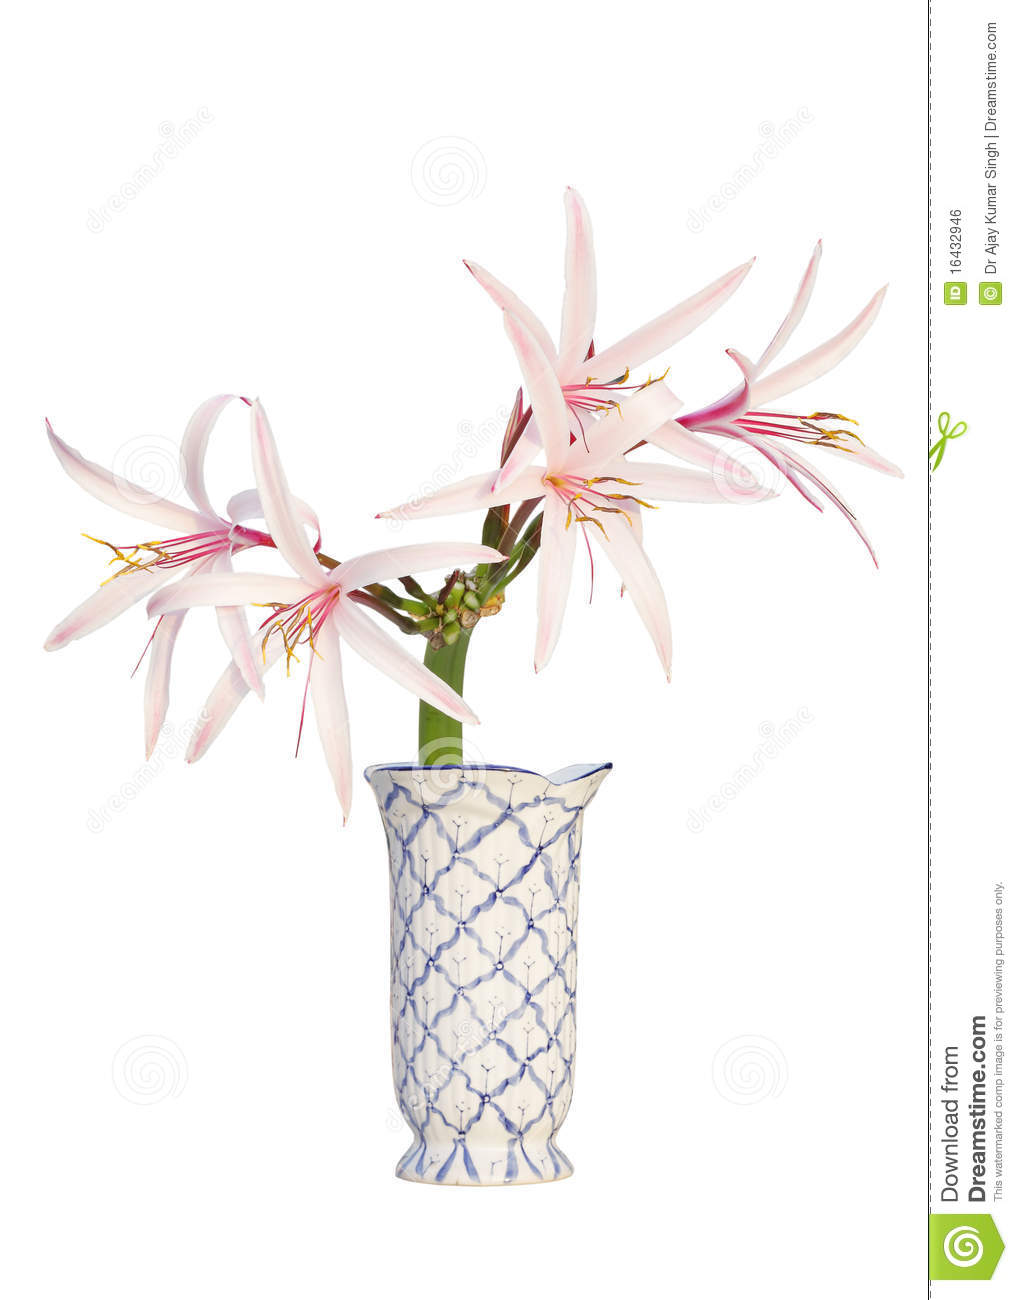 Spider Lily Free Clipart.